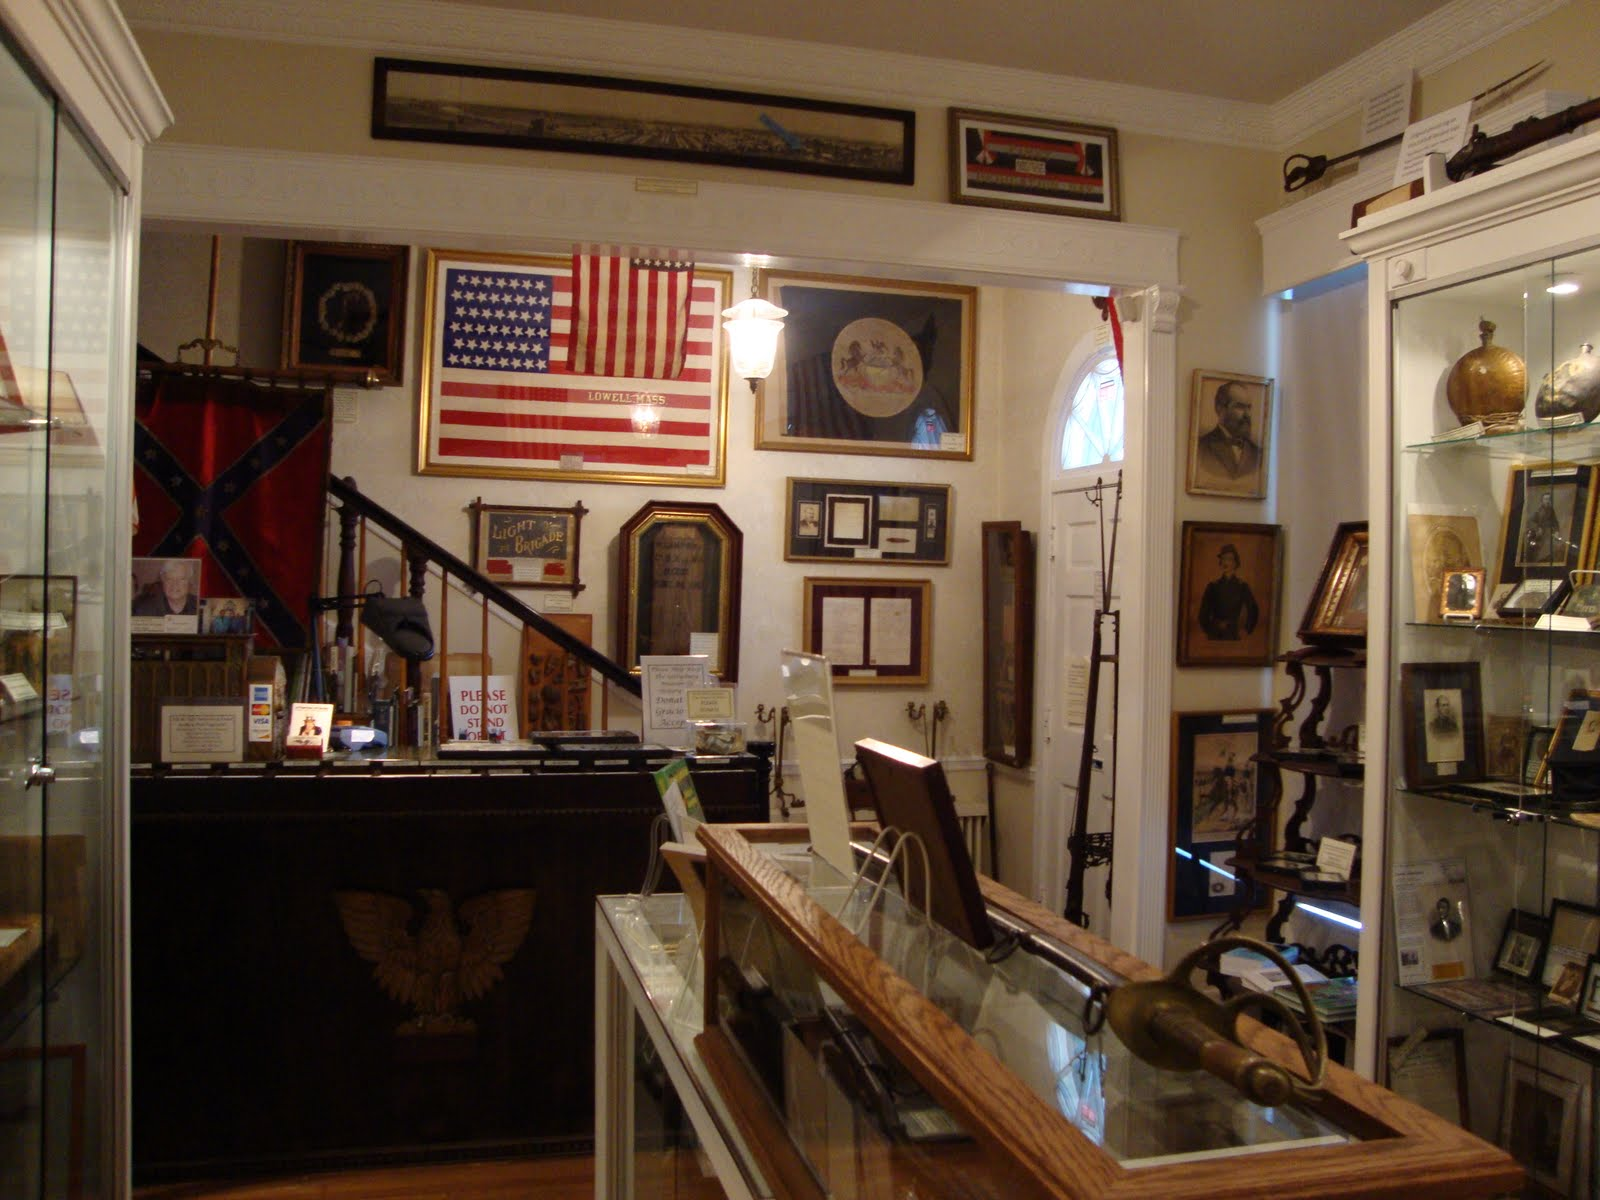 The Gettysburg Museum of History opened in 2009 and displays and sells artifacts related to military history.